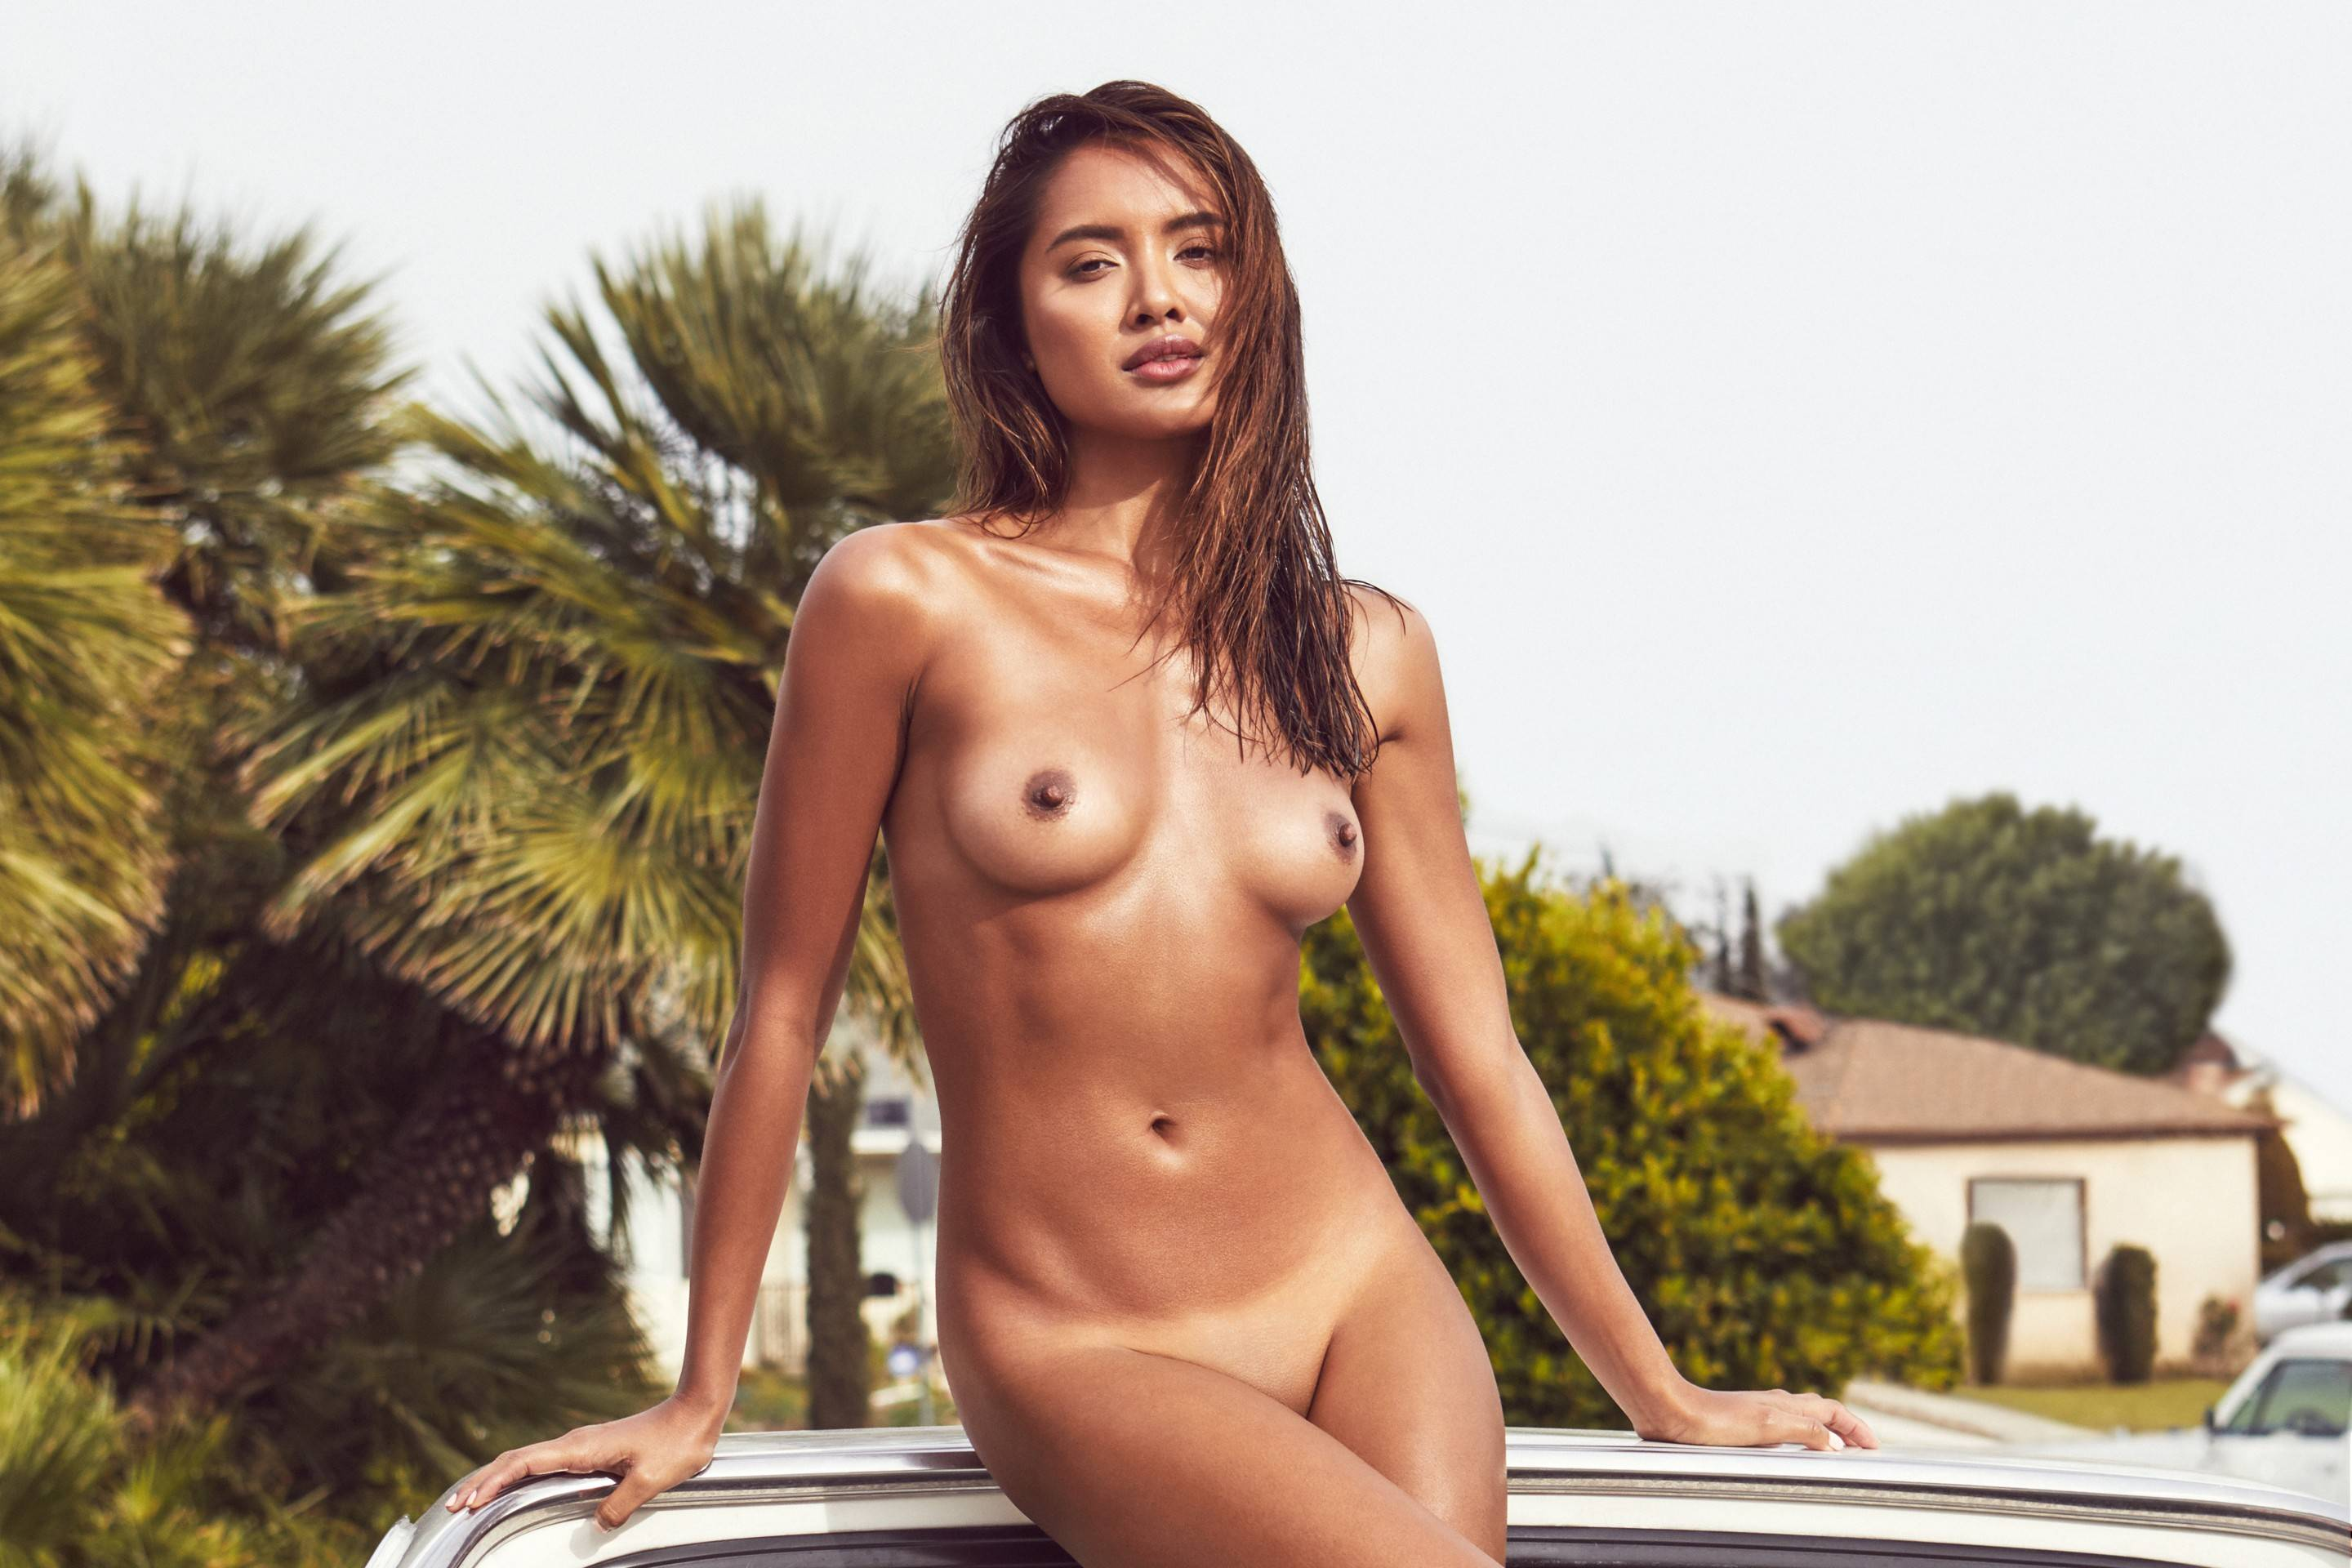 Cassandra Dawn by Kyle Deleu for Playboy US May/June 2018